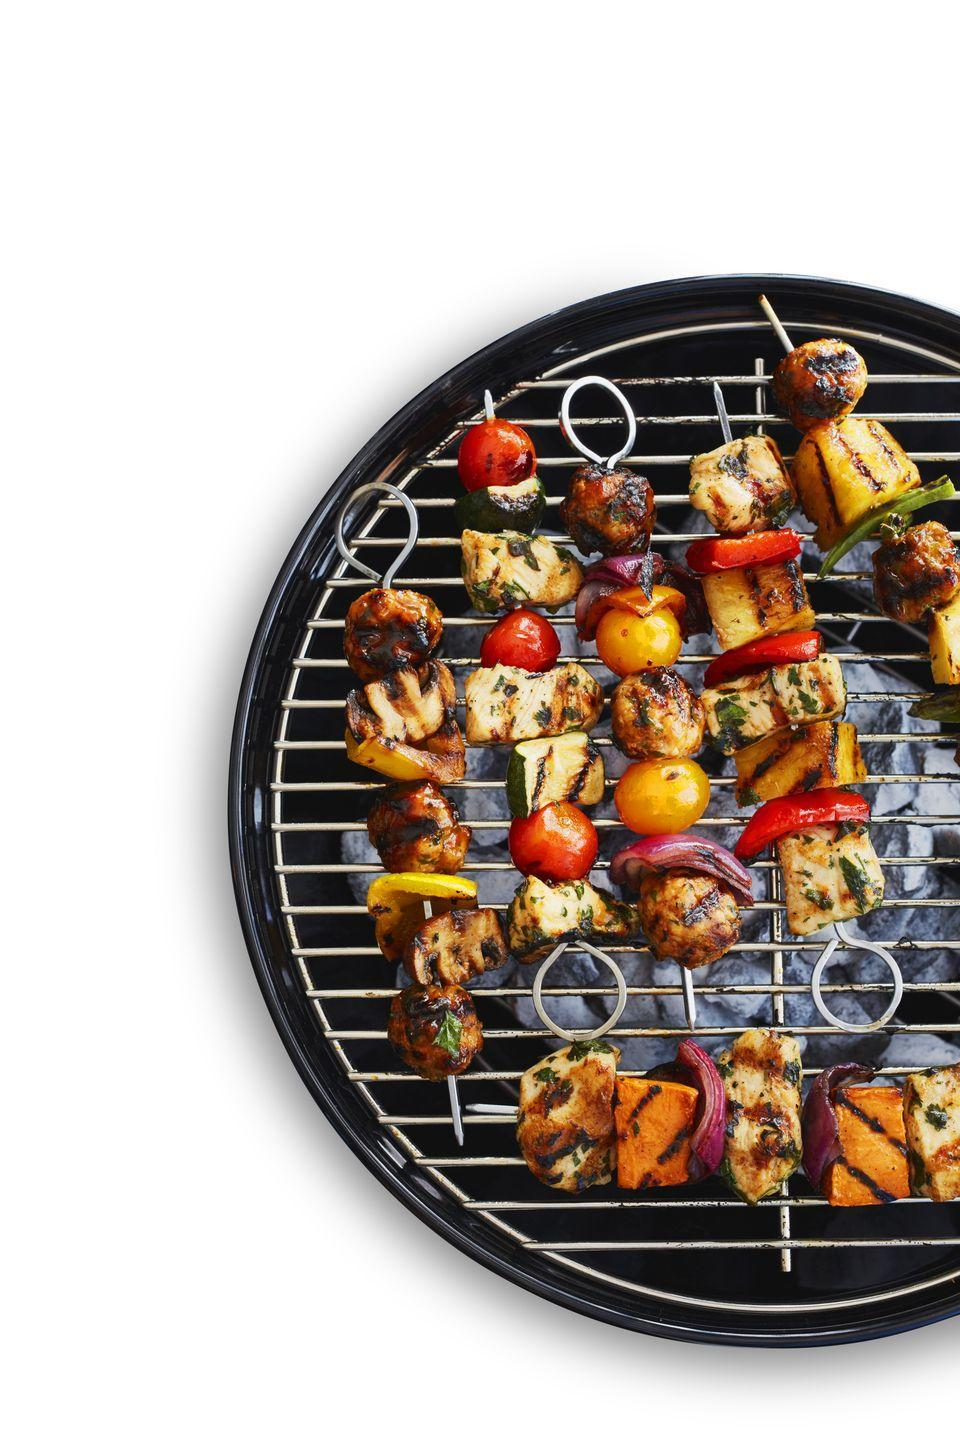 """<p>It's not too late to fire up the grill for these chicken kebabs. And you'll definitely want to since they take less than 30 minutes to cook.</p><p><a href=""""https://www.womansday.com/food-recipes/a32884878/chicken-kebabs-recipe/"""" rel=""""nofollow noopener"""" target=""""_blank"""" data-ylk=""""slk:Get the recipe for Chicken Kebabs."""" class=""""link rapid-noclick-resp""""><strong><em>Get the recipe for Chicken Kebabs. </em></strong></a></p>"""